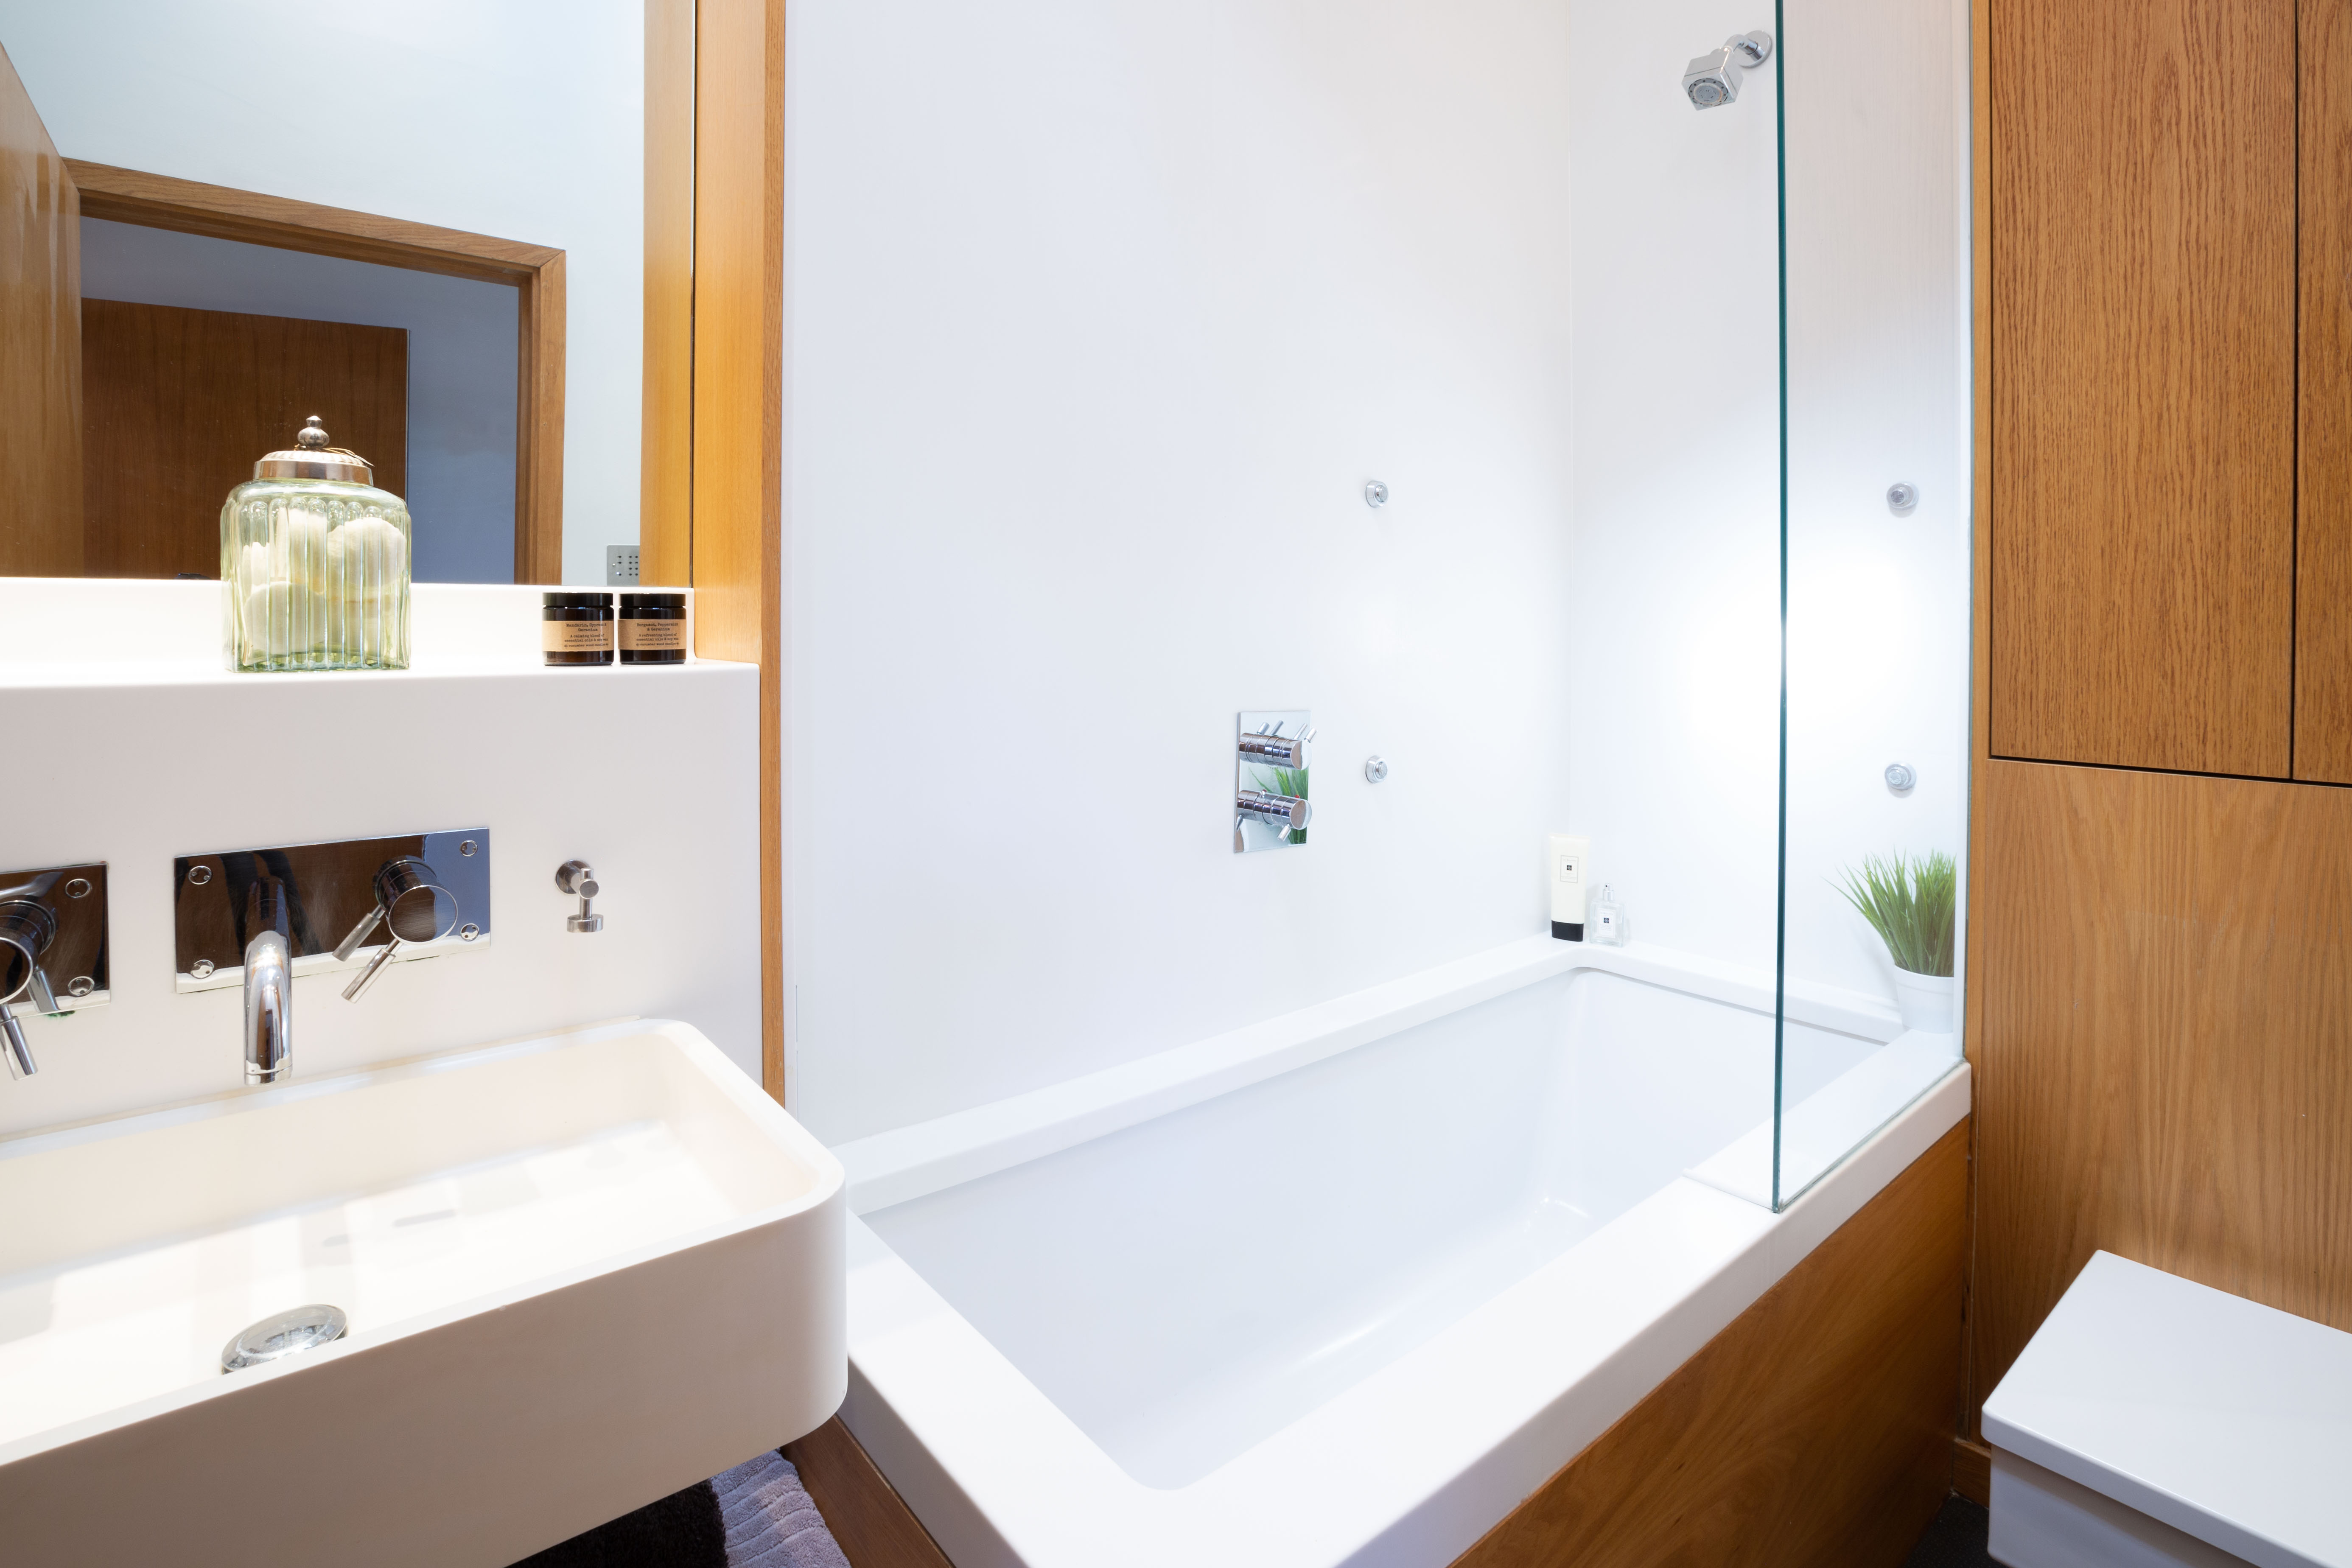 bathroom ensuite serviced apartments Home from Holme St Albans